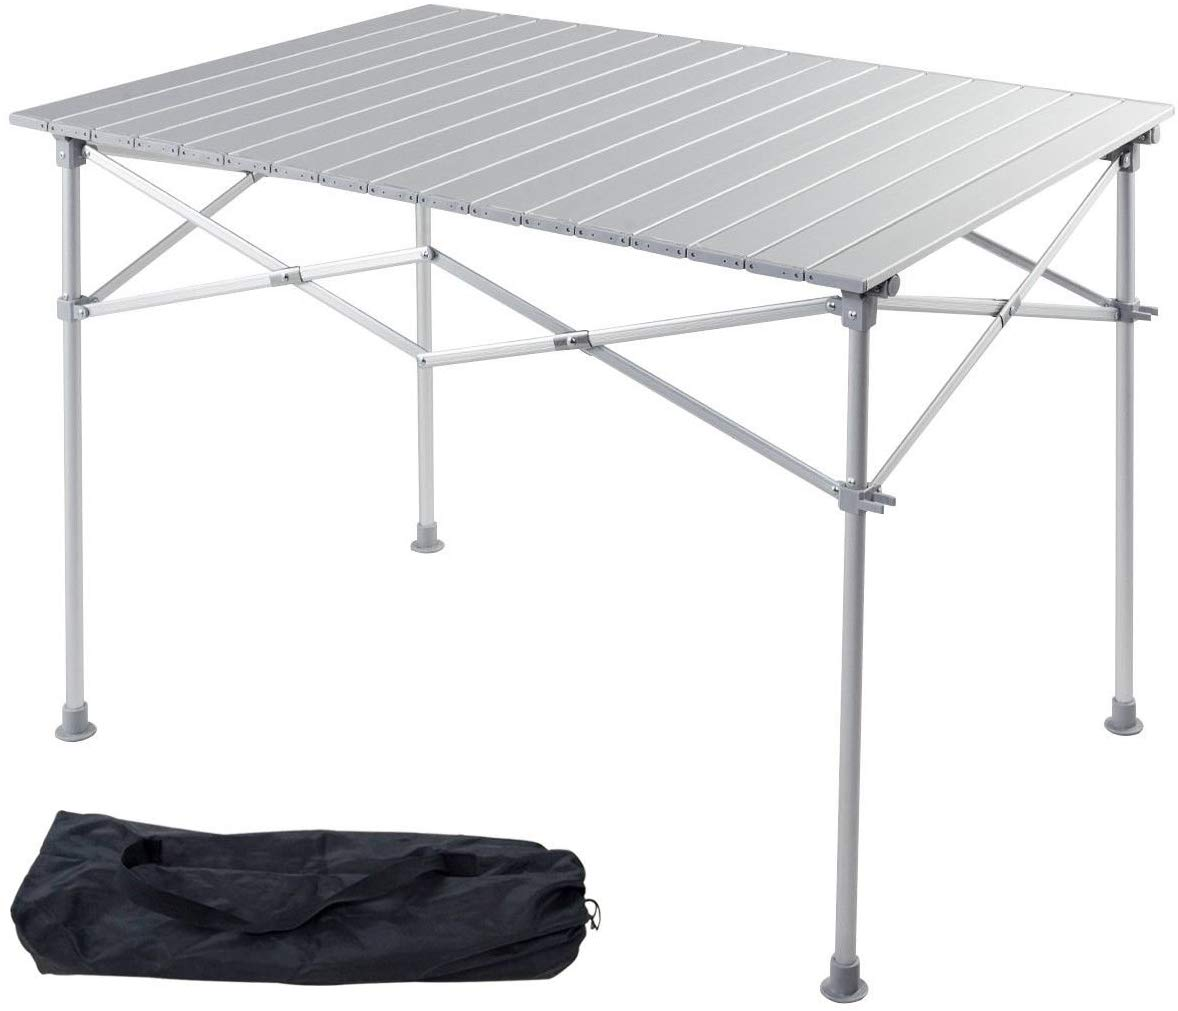 Giantex Portable Aluminum Folding Table Lightweight Outdoor Roll Up Camping Picnic Table with Storage Bag